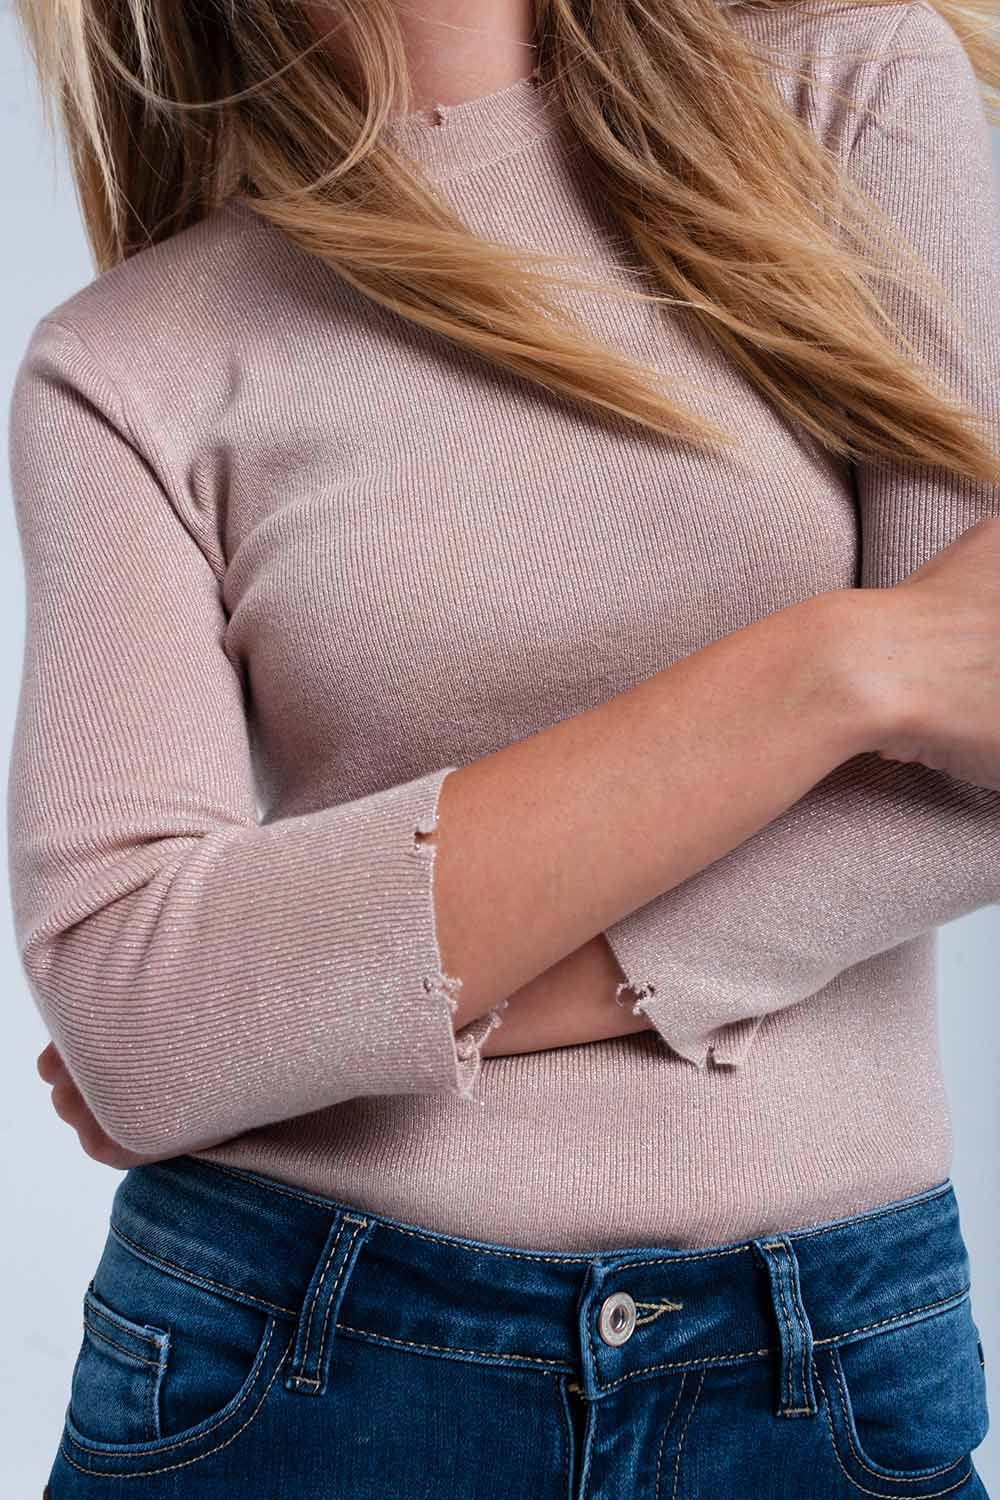 Pink Shiny Sweater-Women - Apparel - Sweaters - Pull Over-Product Details Pink shiny sweater with crew neckline and 3/4 sleeves in bodycon fit. It also has little cut in the hem. Soft woven.-Keyomi-Sook